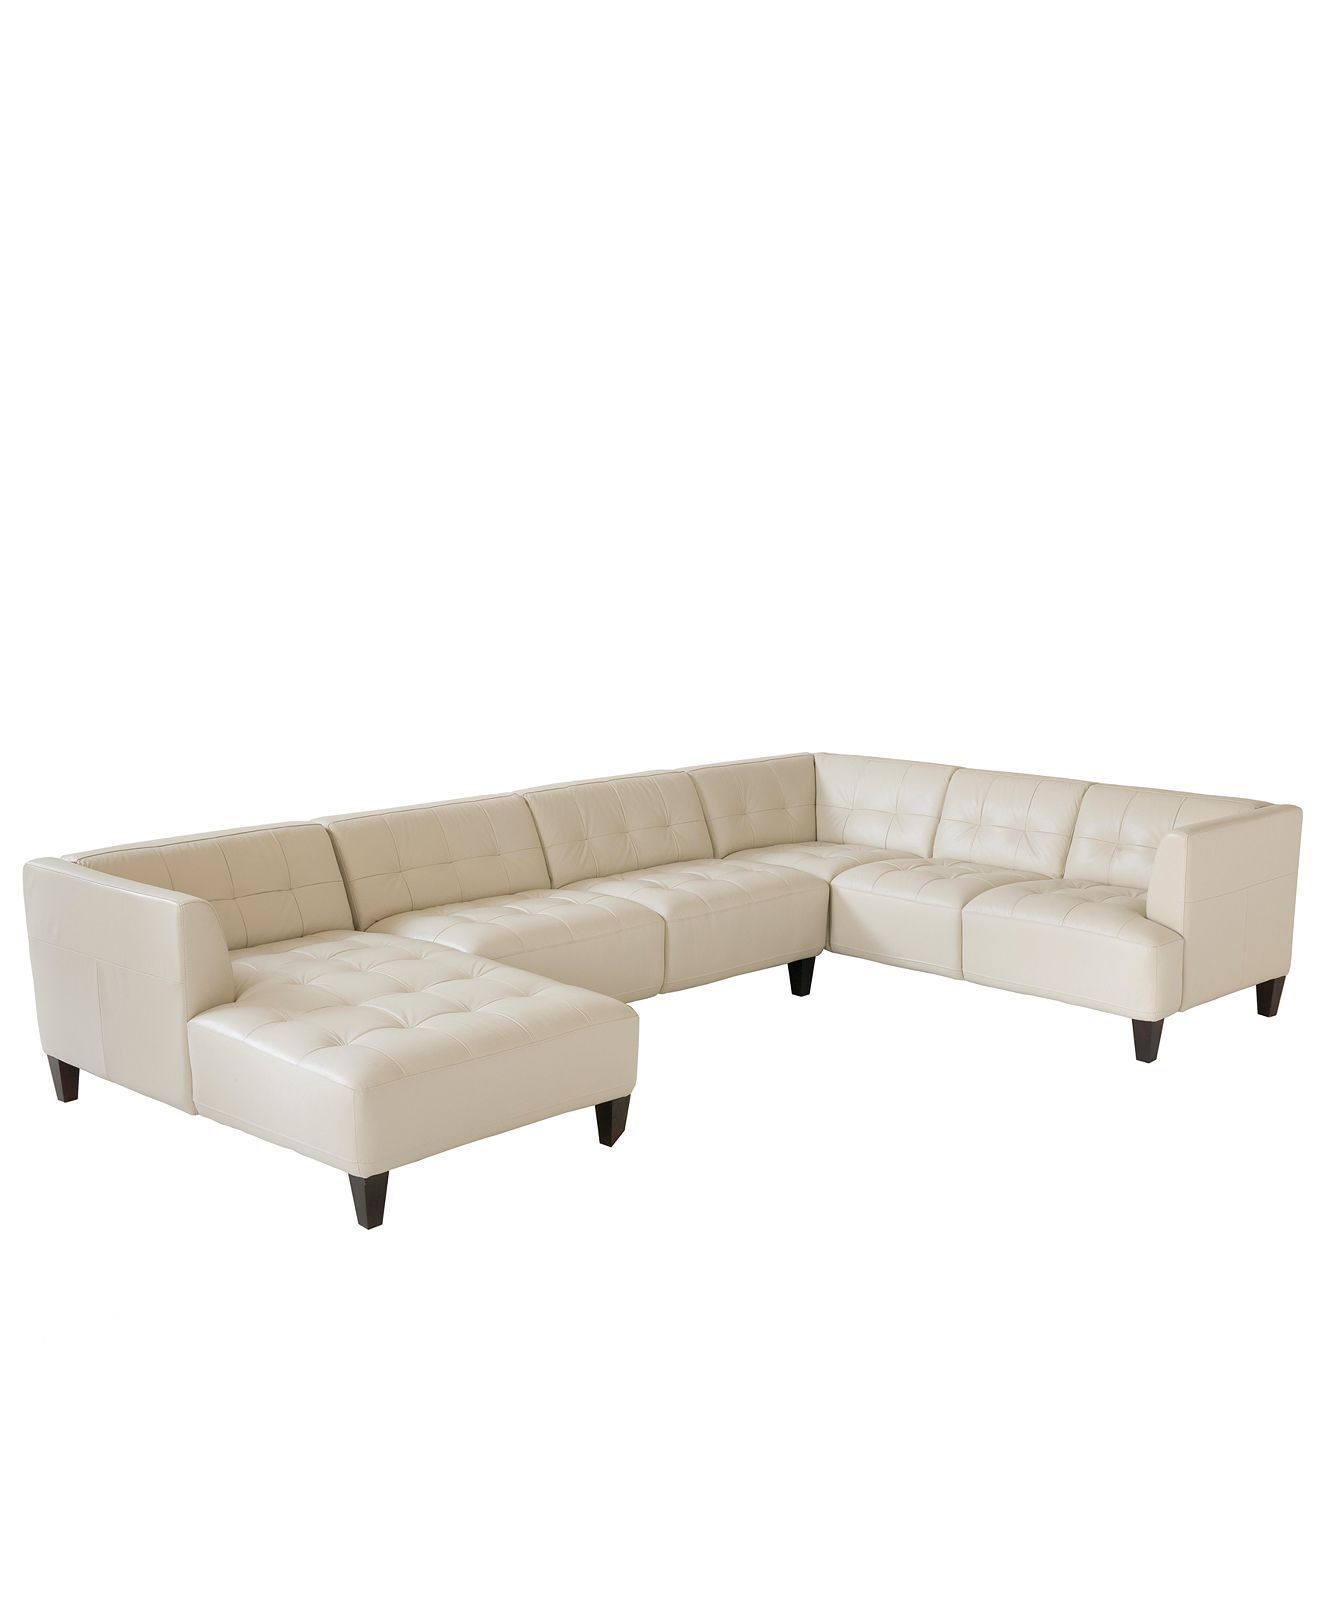 Marvelous Our New Couch Alessia Sectional From Macys Furniture Pabps2019 Chair Design Images Pabps2019Com